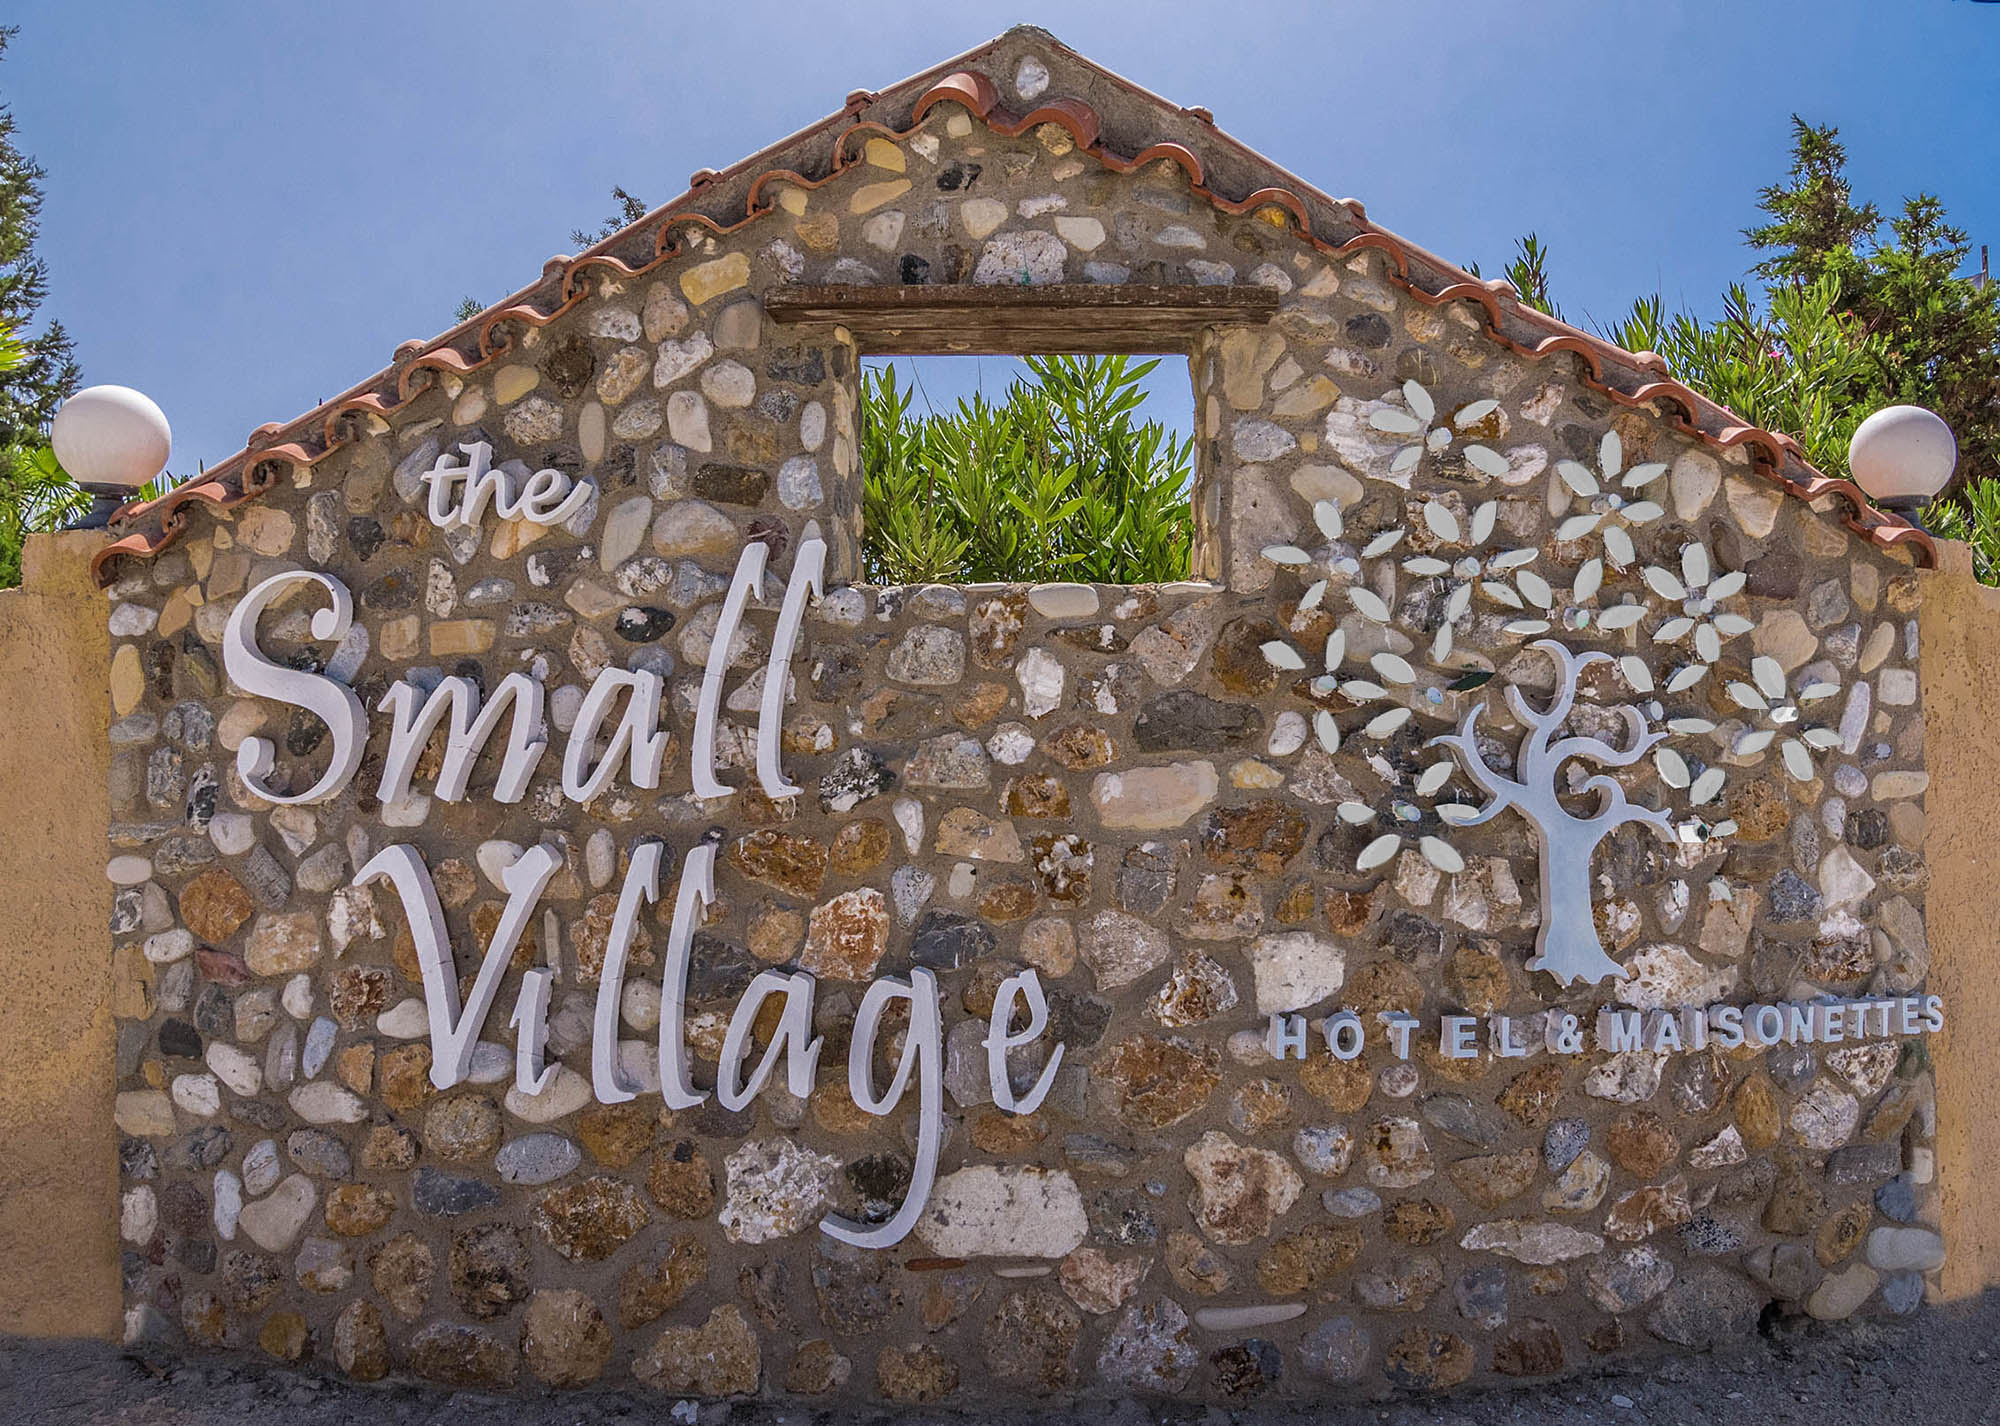 THE SMALL VILLAGE HOTEL